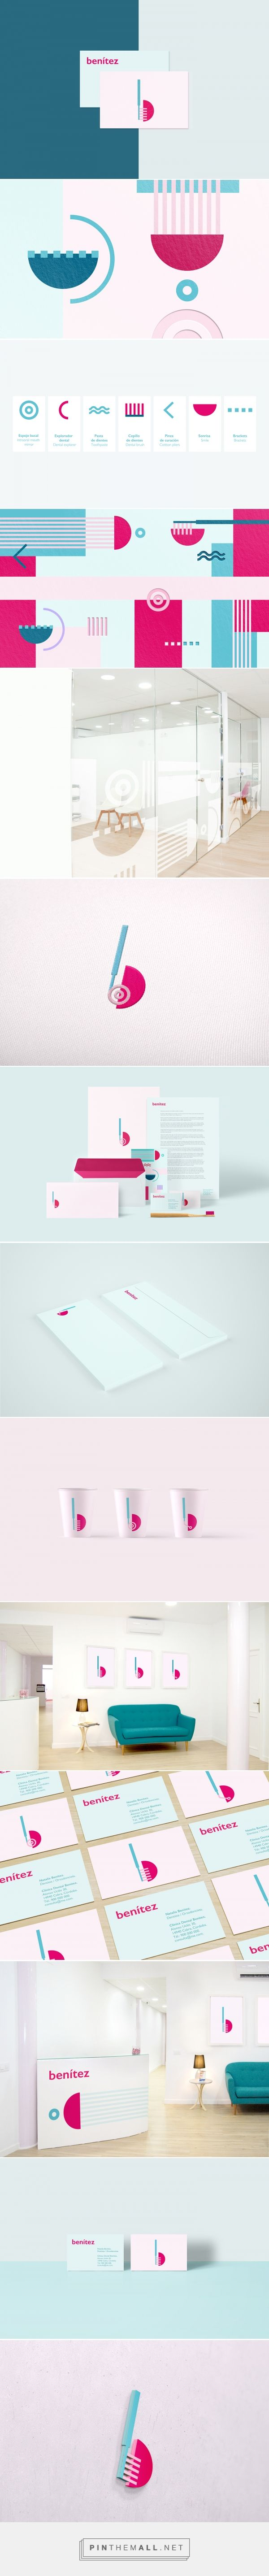 Denítez Dental Clinic Branding by Maria Hdez | Fivestar Branding Agency – Design and Branding Agency & Curated Inspiration Gallery